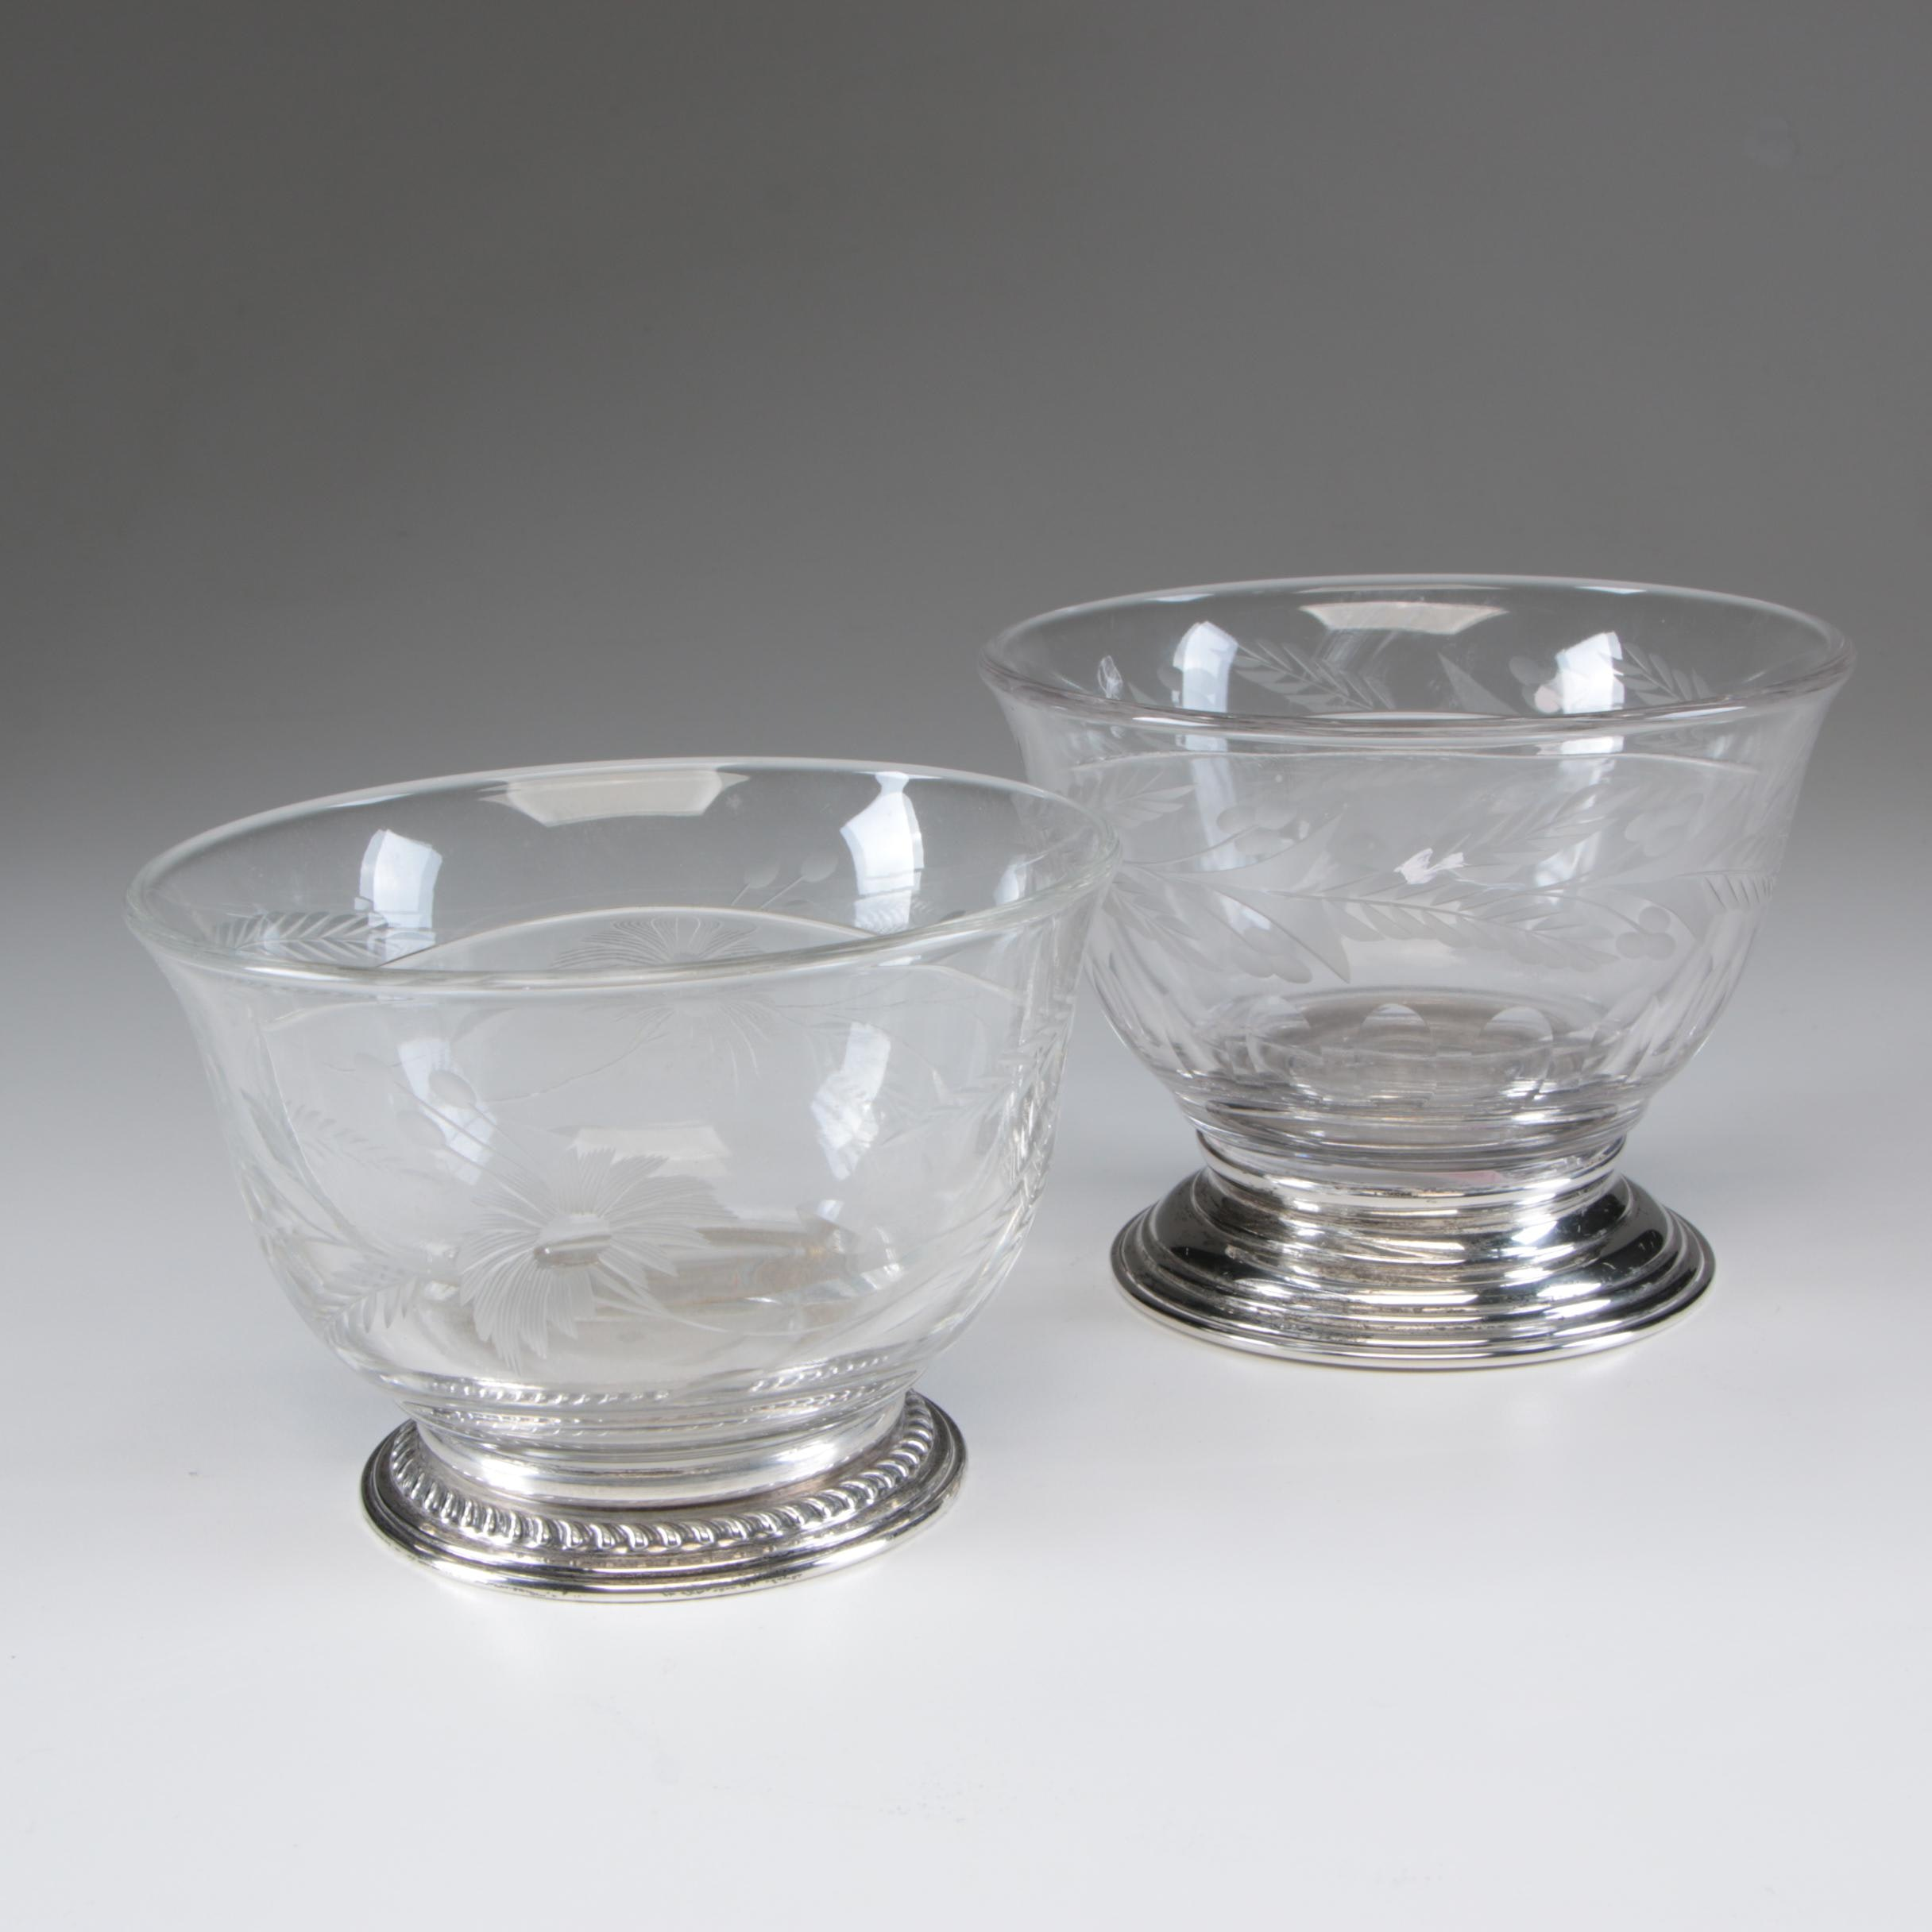 Heisey Etched Glass Divided Bowl with Wallace Sterling Rim and More